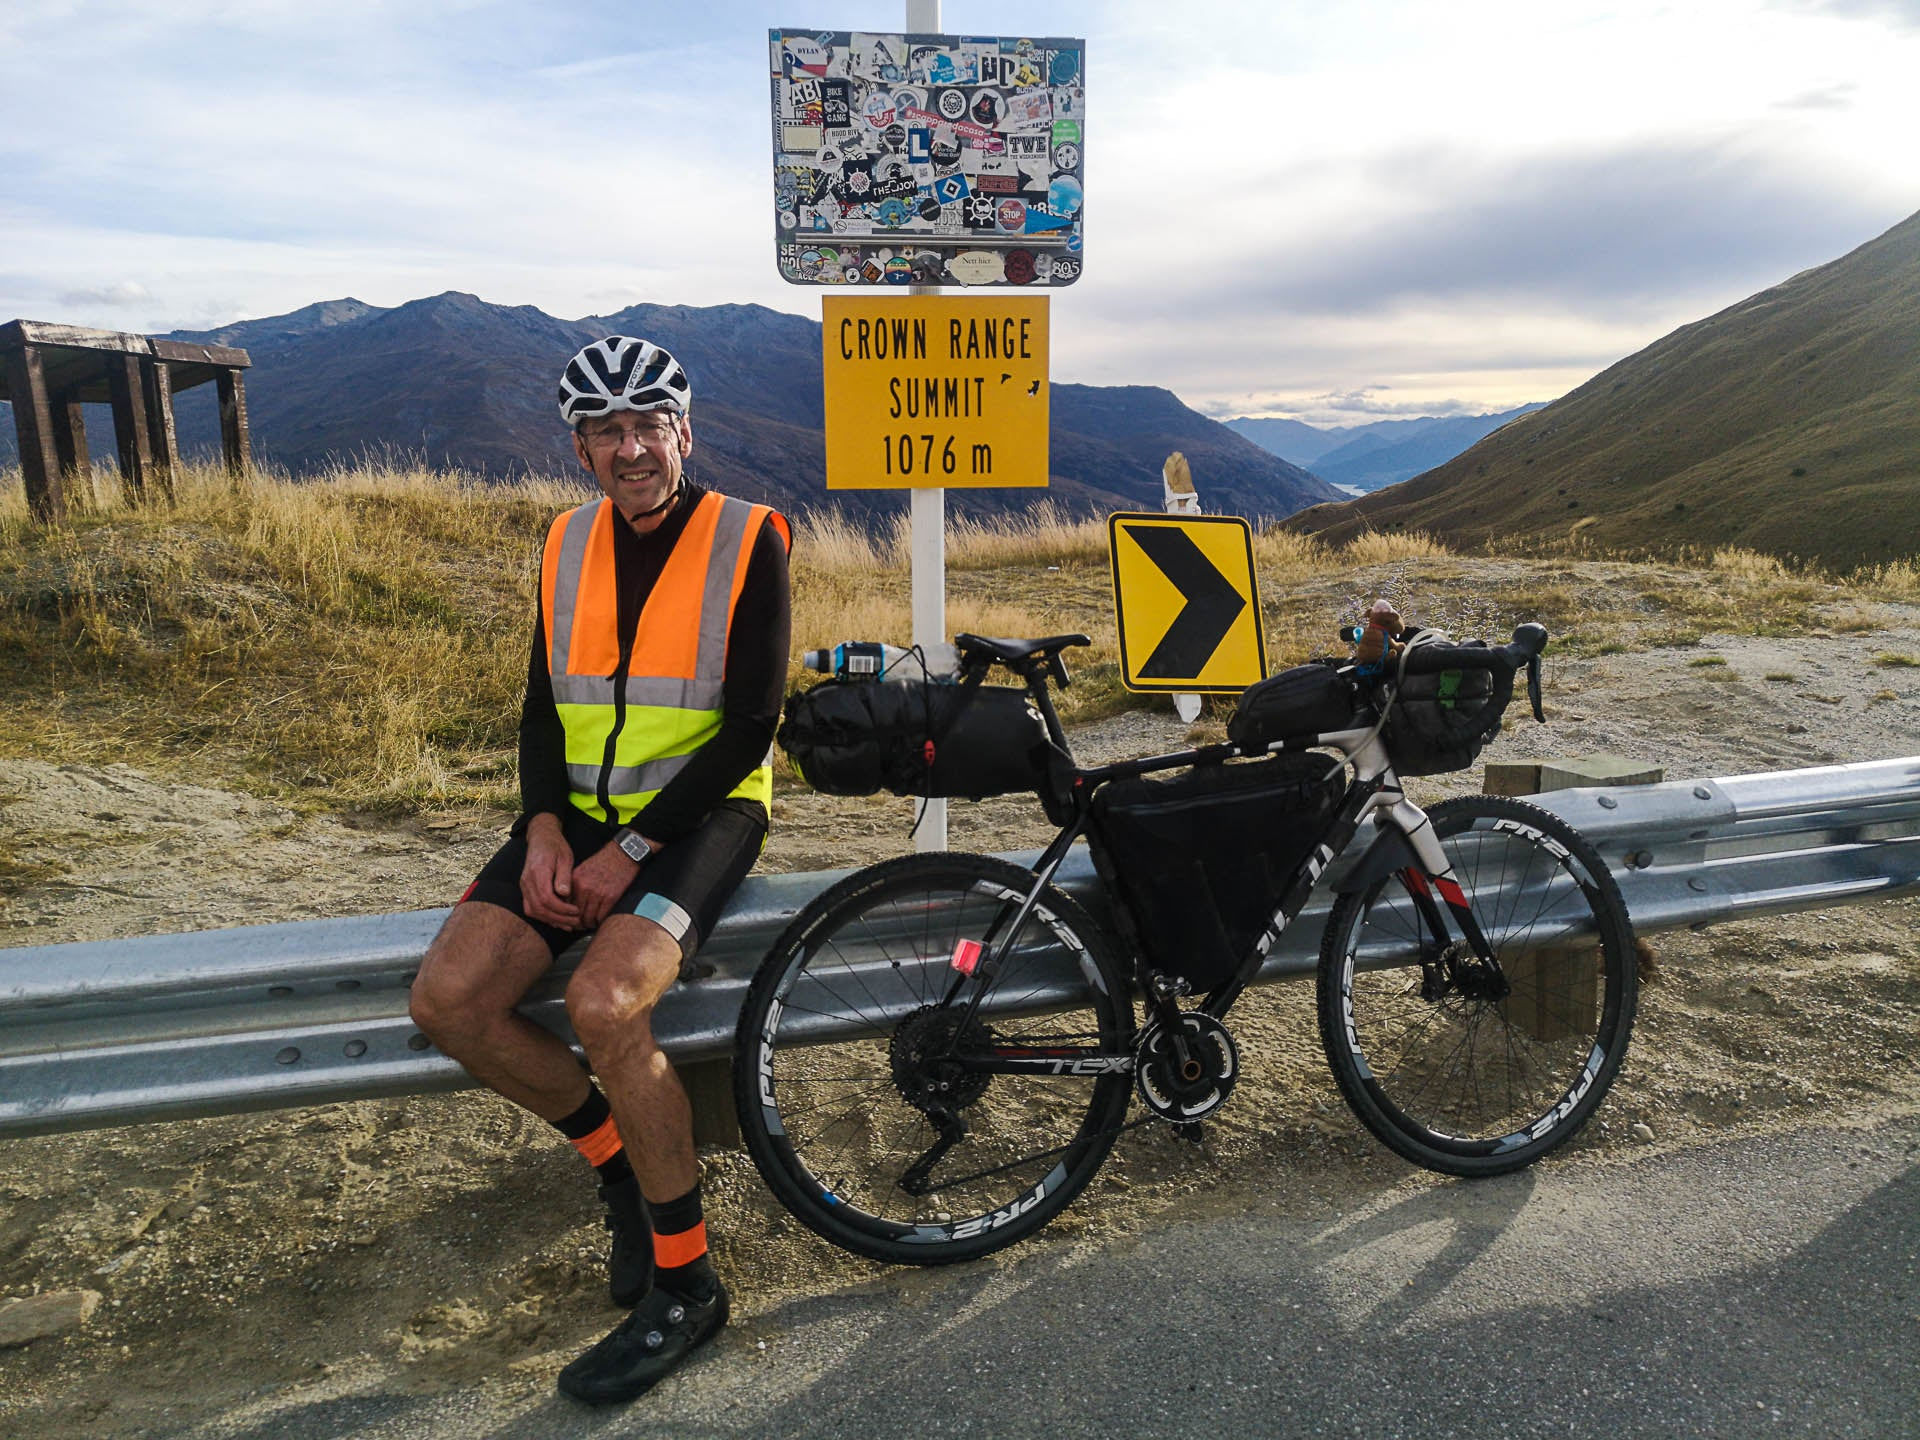 NZ's Longest Bike Packing Trip Becomes a Survival Exercise